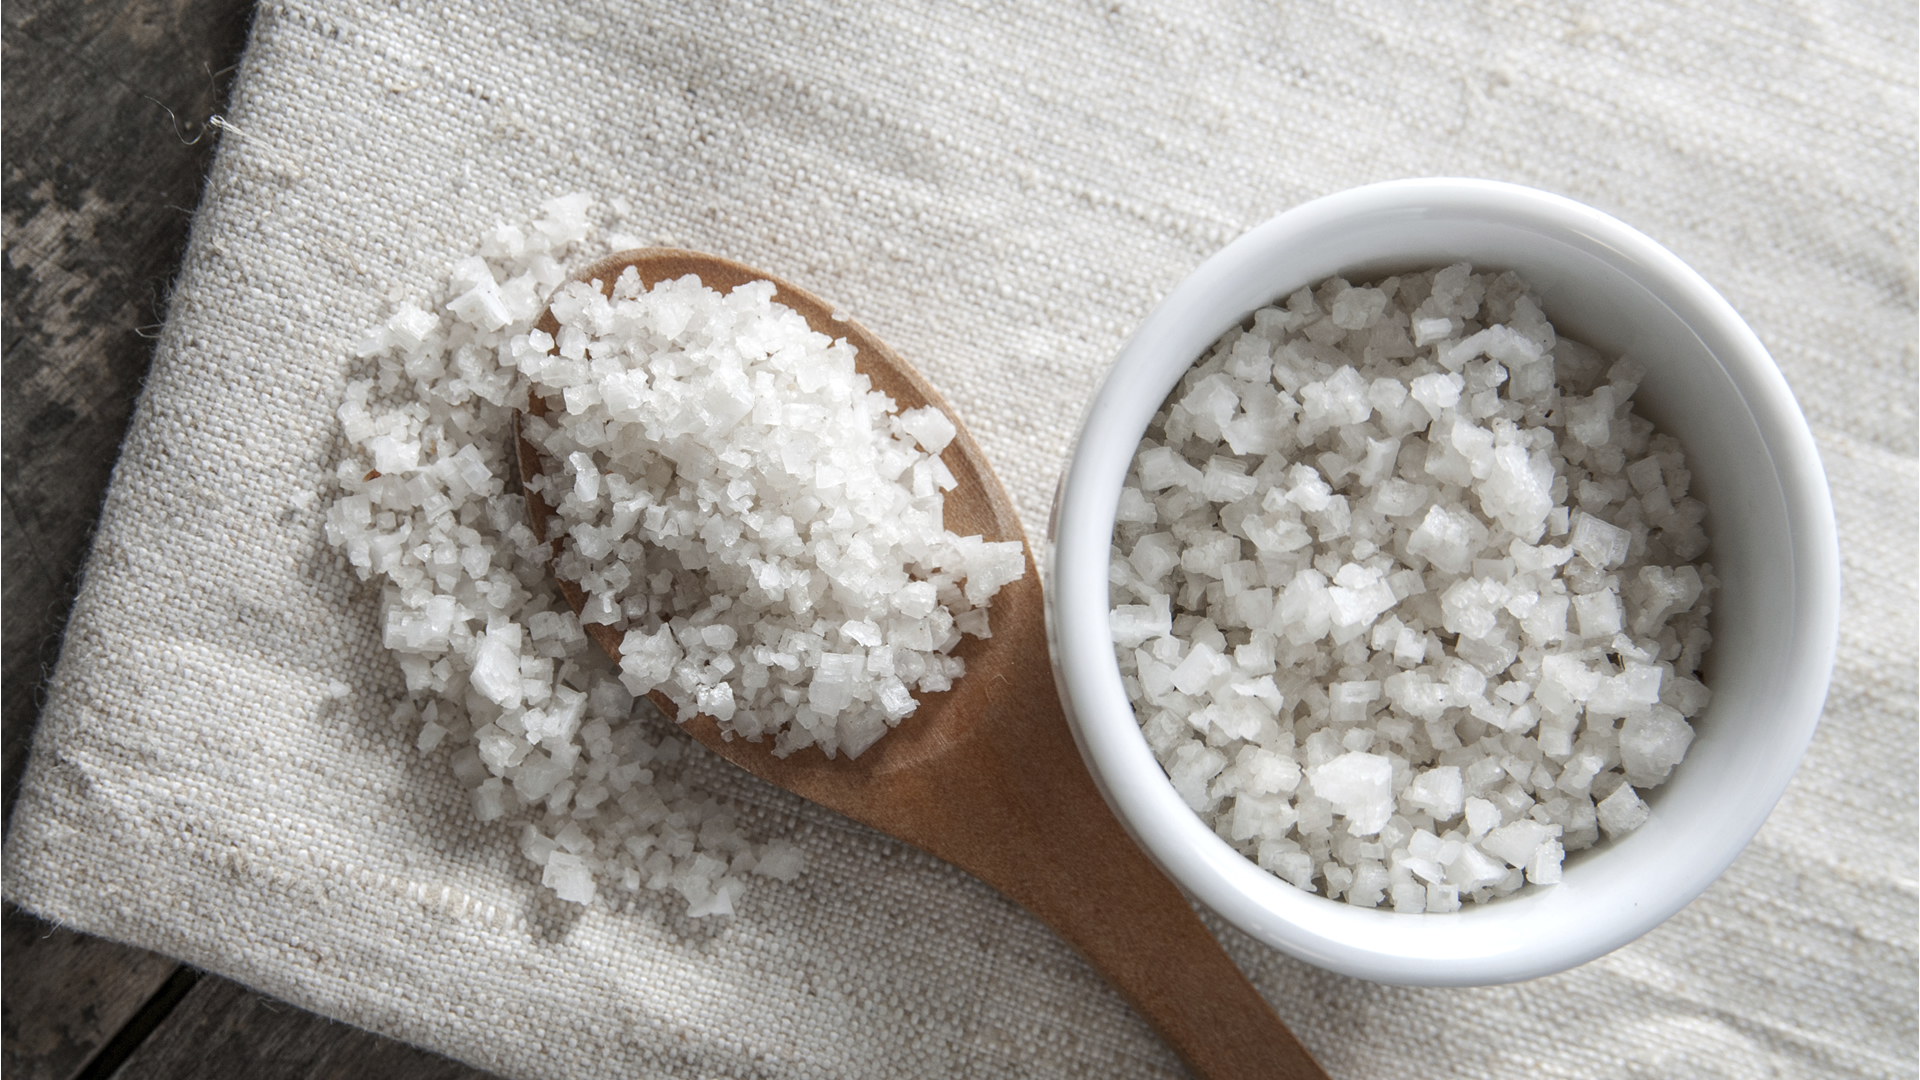 Les grands bienfaits du sel pour les cheveux  - The great benefits of salt for hair